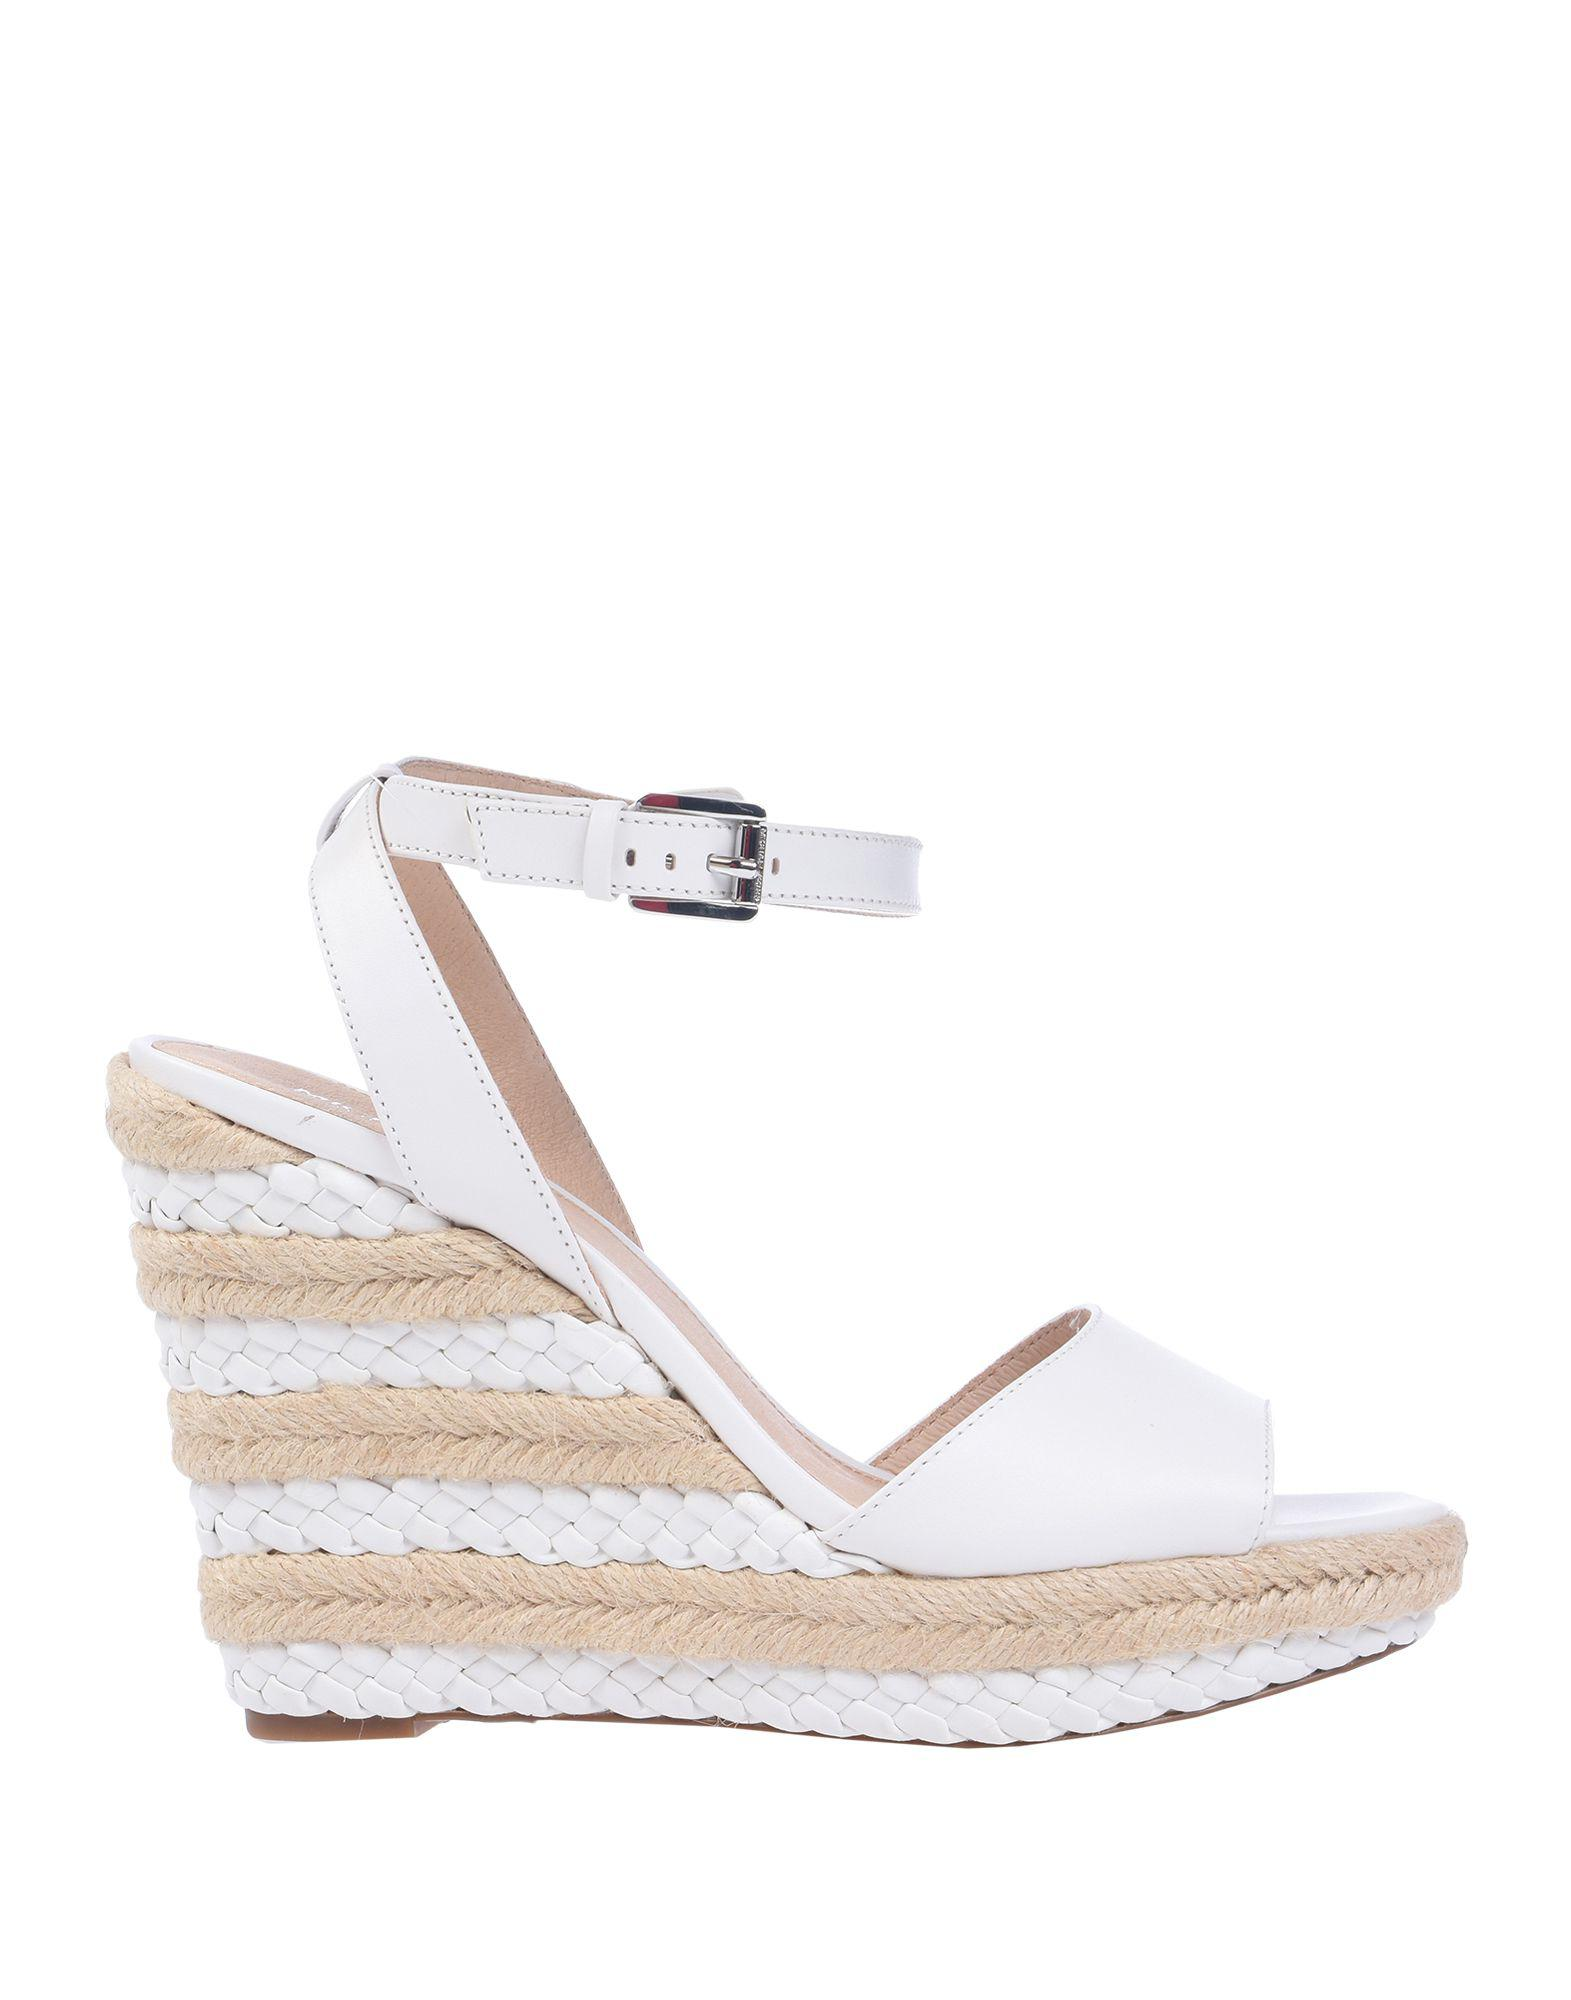 5110a32352e Lyst - Michael Michael Kors Sandals in White